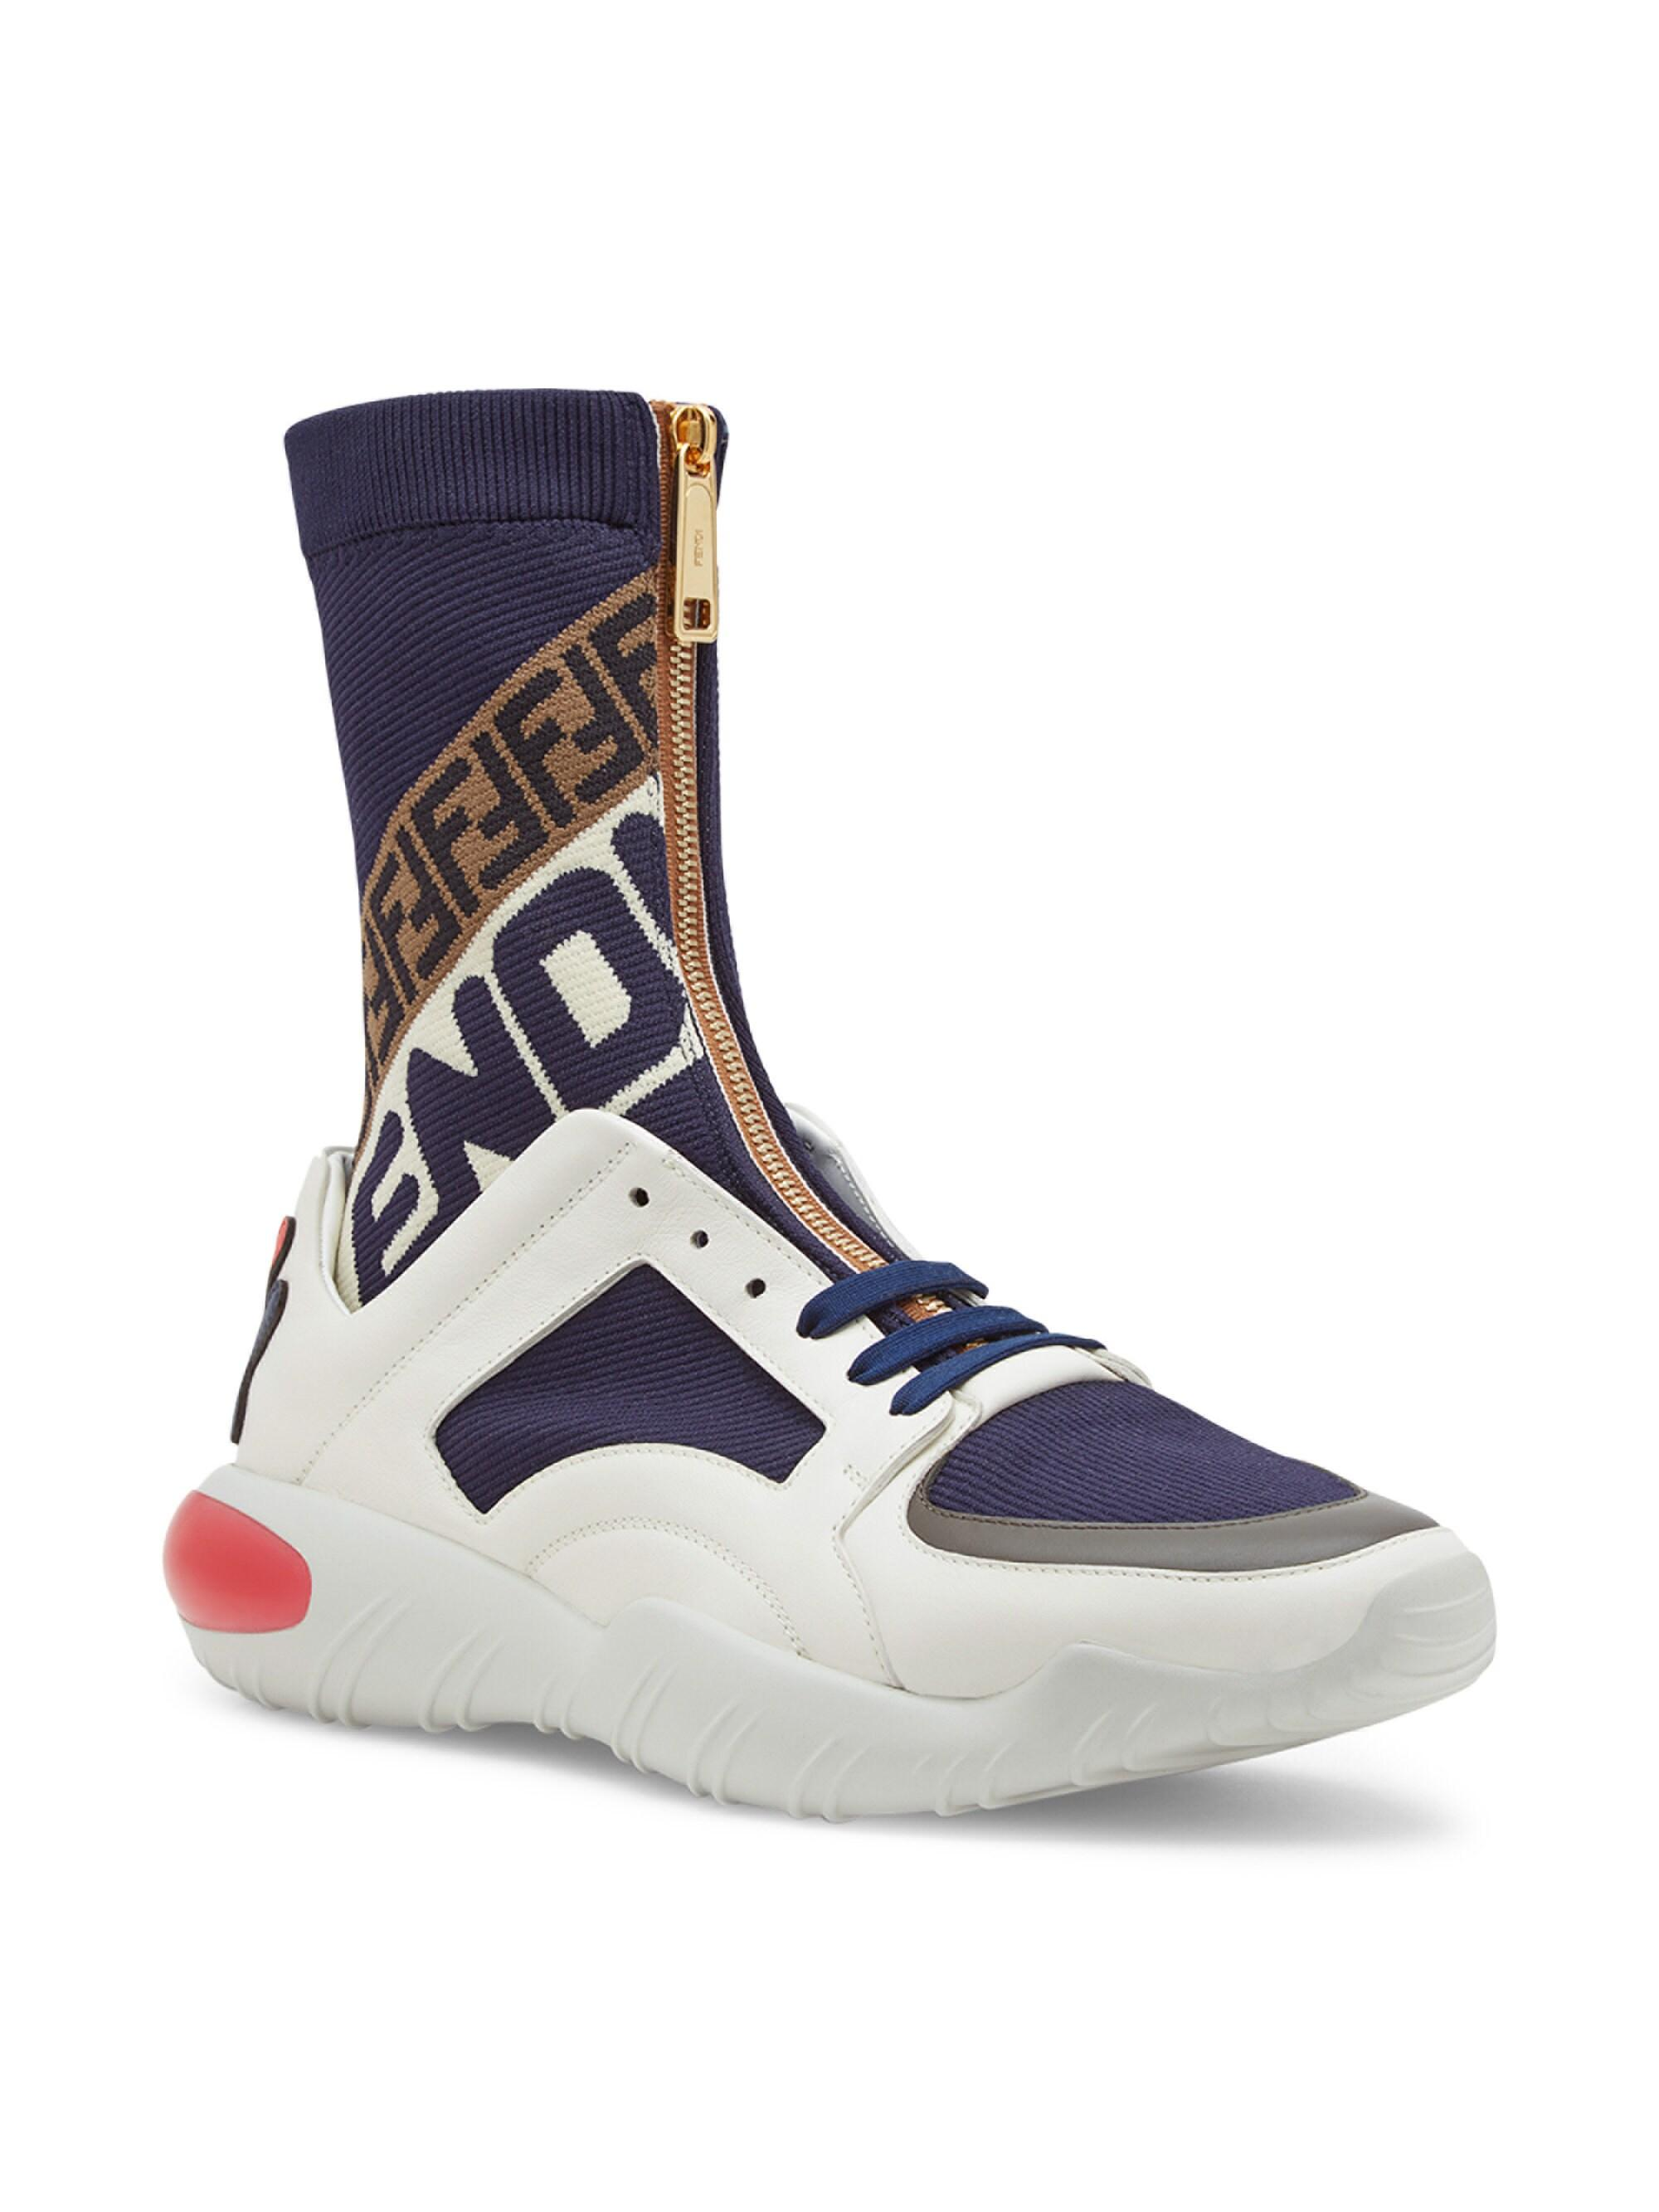 Lace White And Navy Mania Sock Sneakers